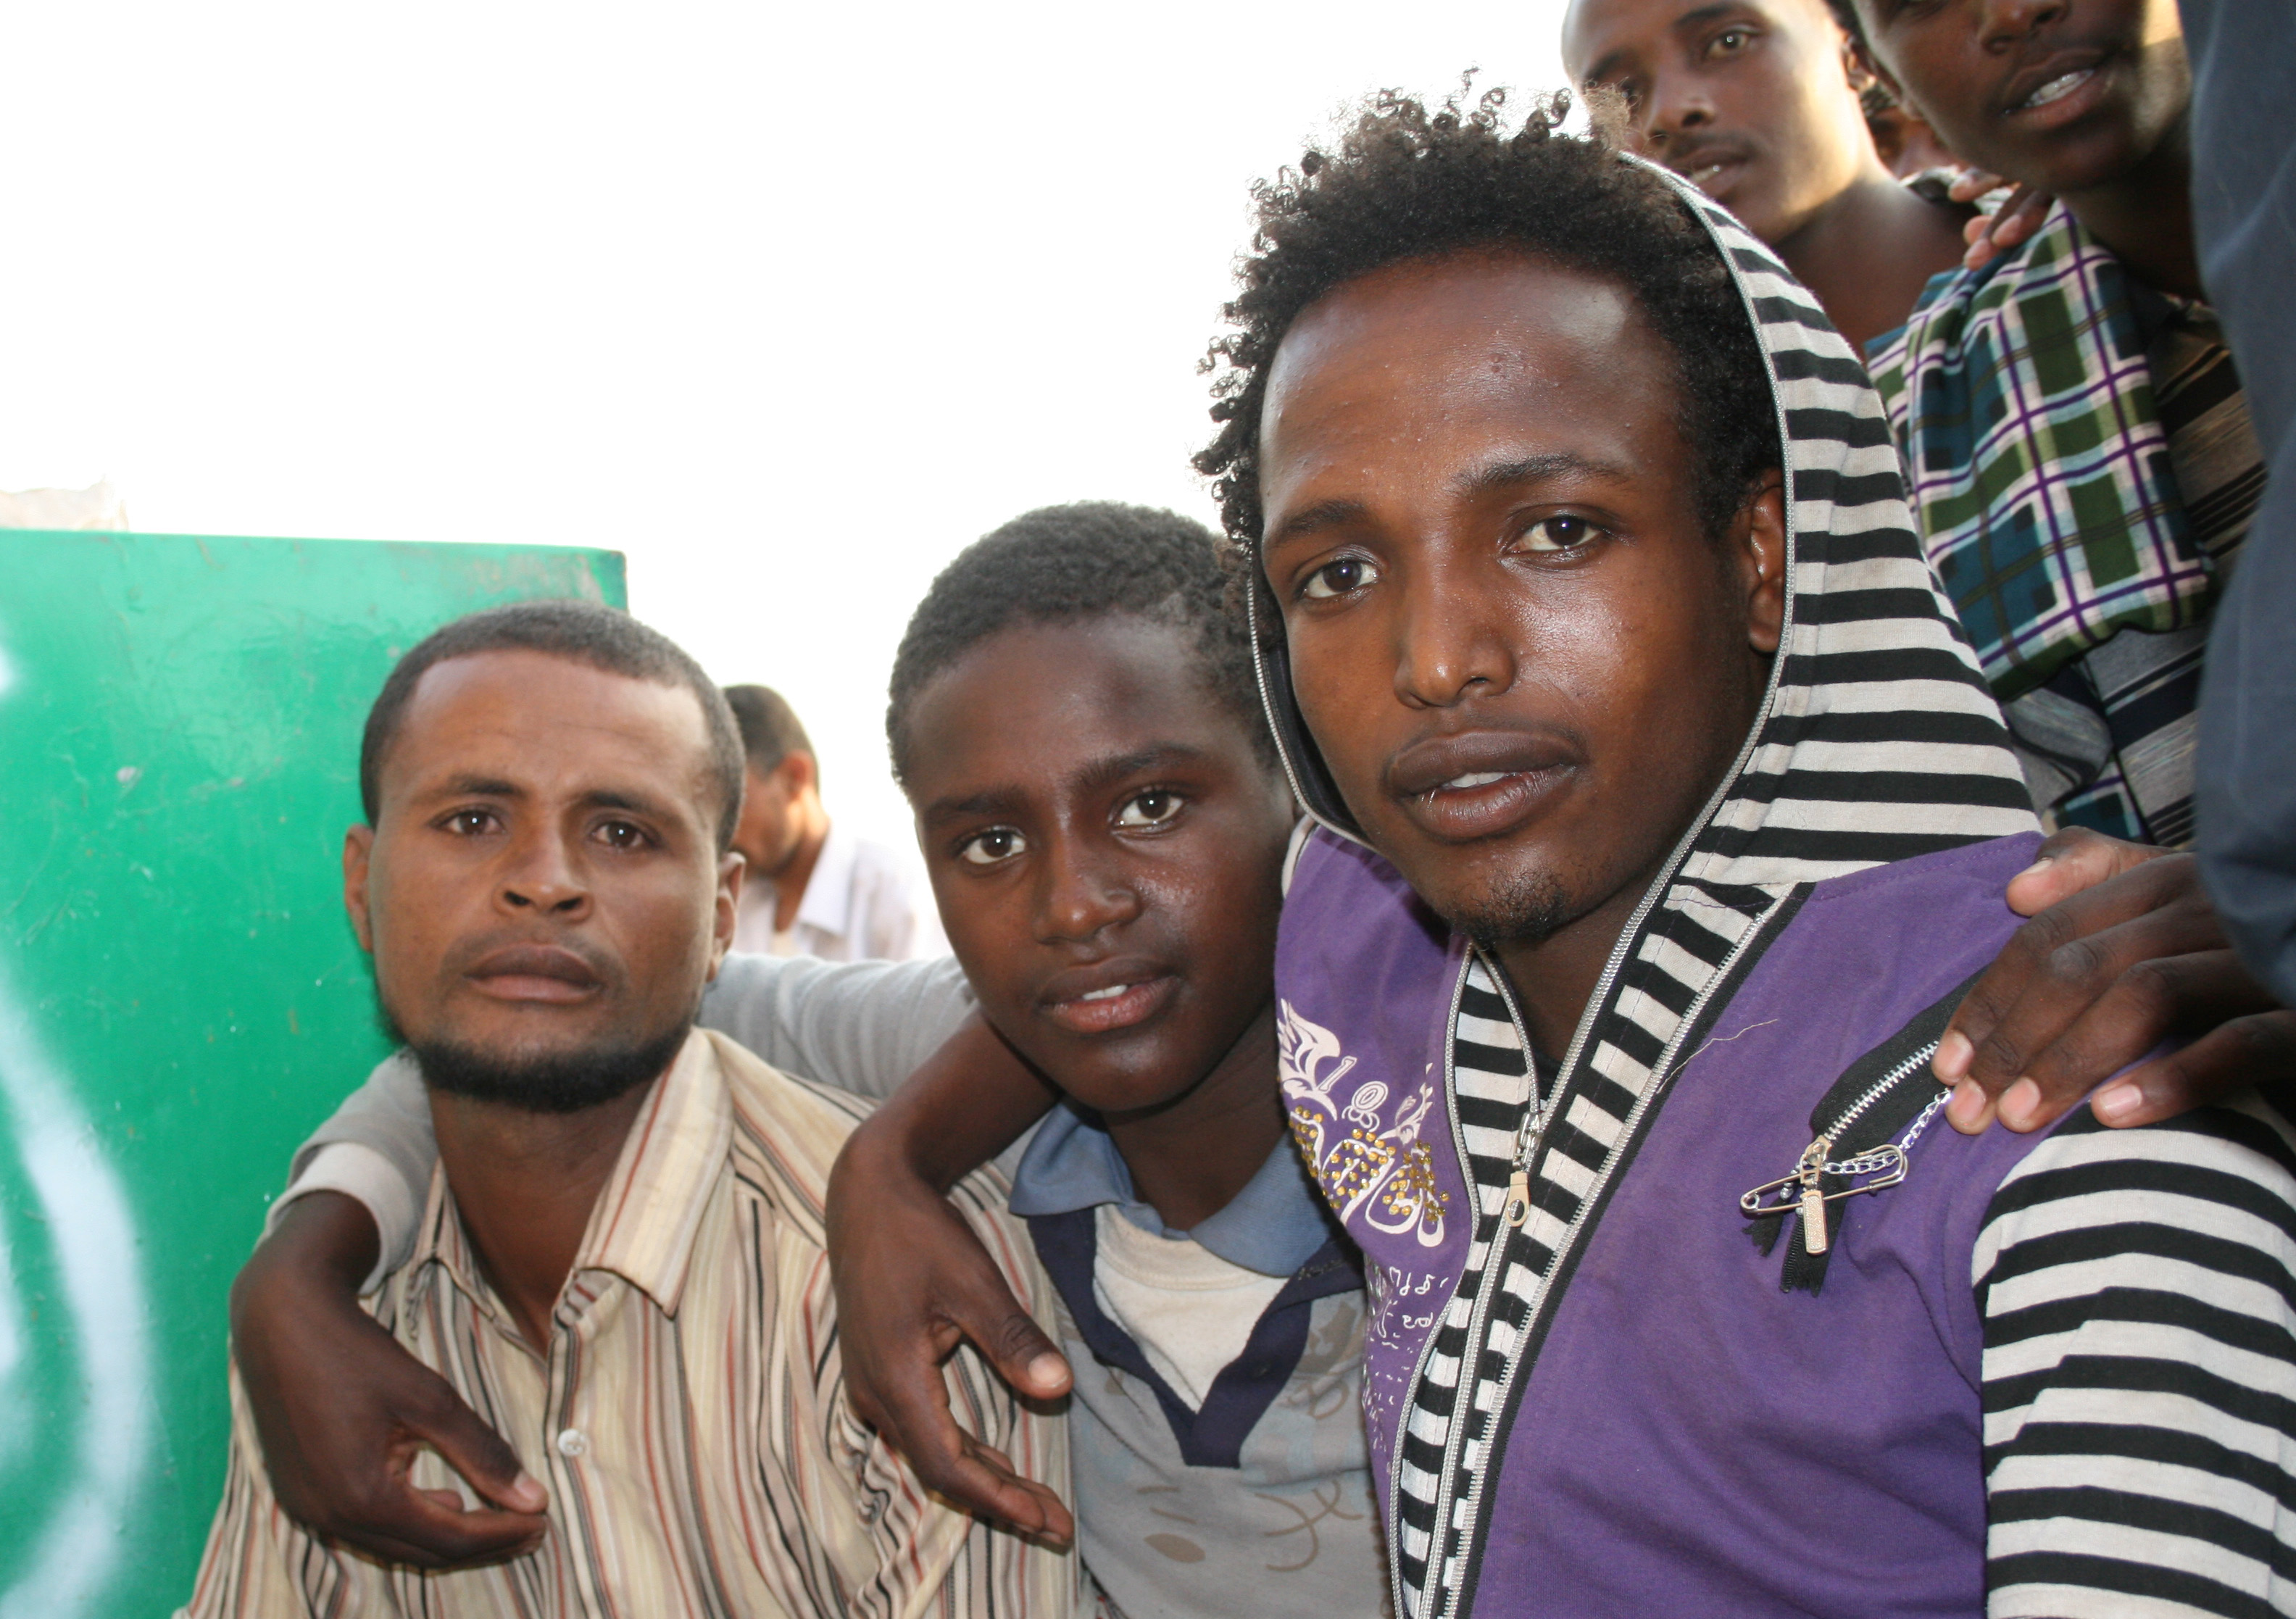 Ethiopians migrants sitting outside the offices of the Charitable Society for Social Welfare in Haradh, Yemen